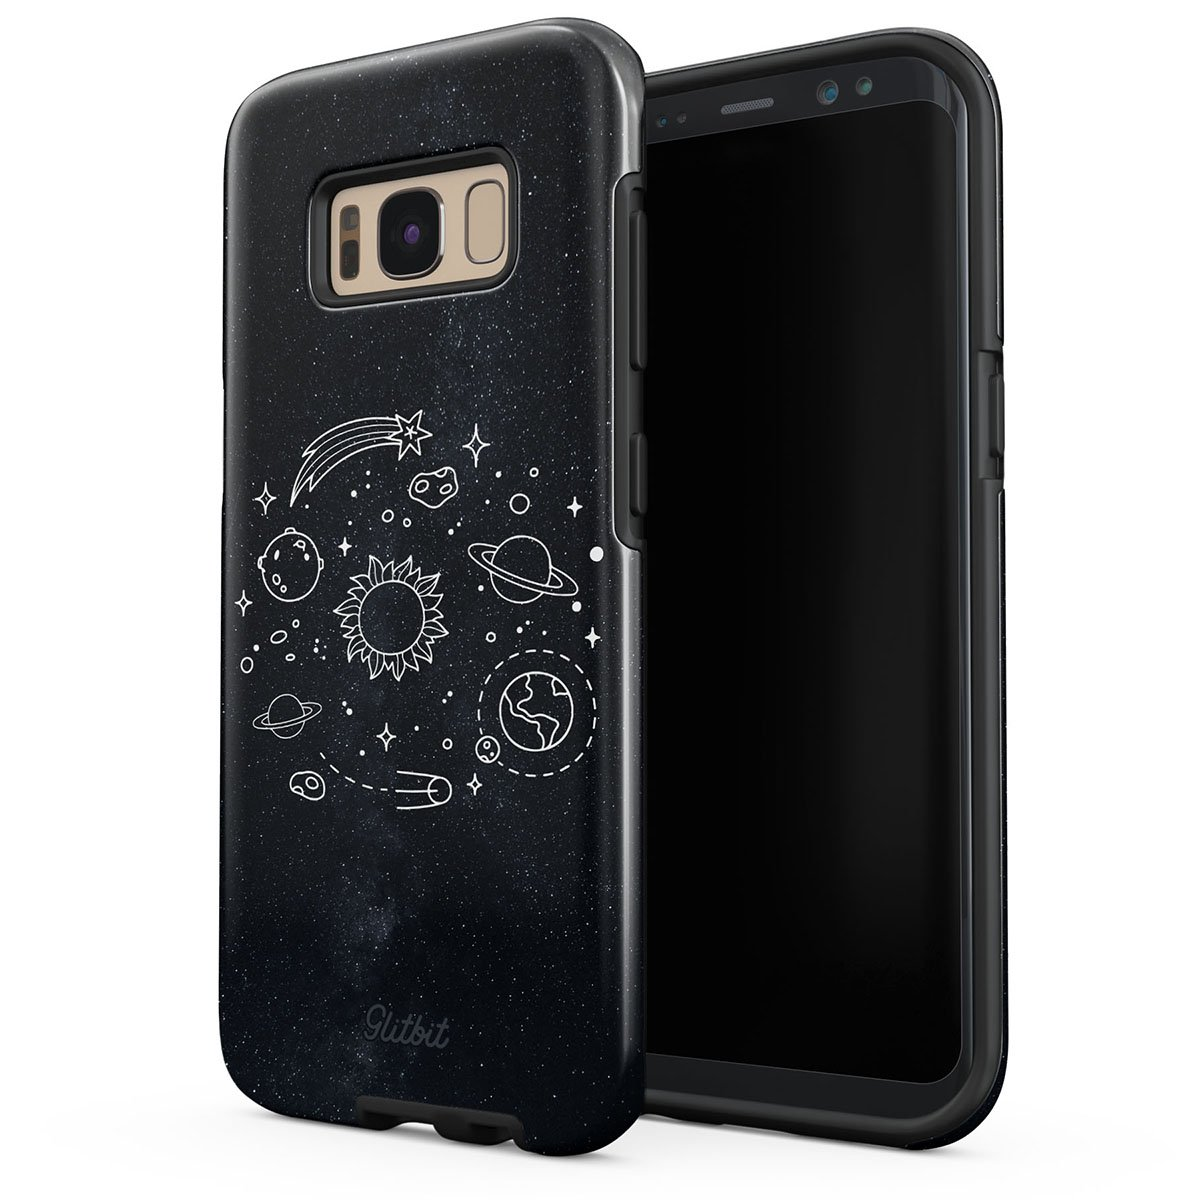 Glitbit Samsung Galaxy S8 Case Cute Solar System Galaxy Stars Planet Sun Earth Moon Universe Cosmic Cosmos Space Tumblr Heavy Duty Shockproof Dual Layer Hard Shell + Silicone Protective Cover